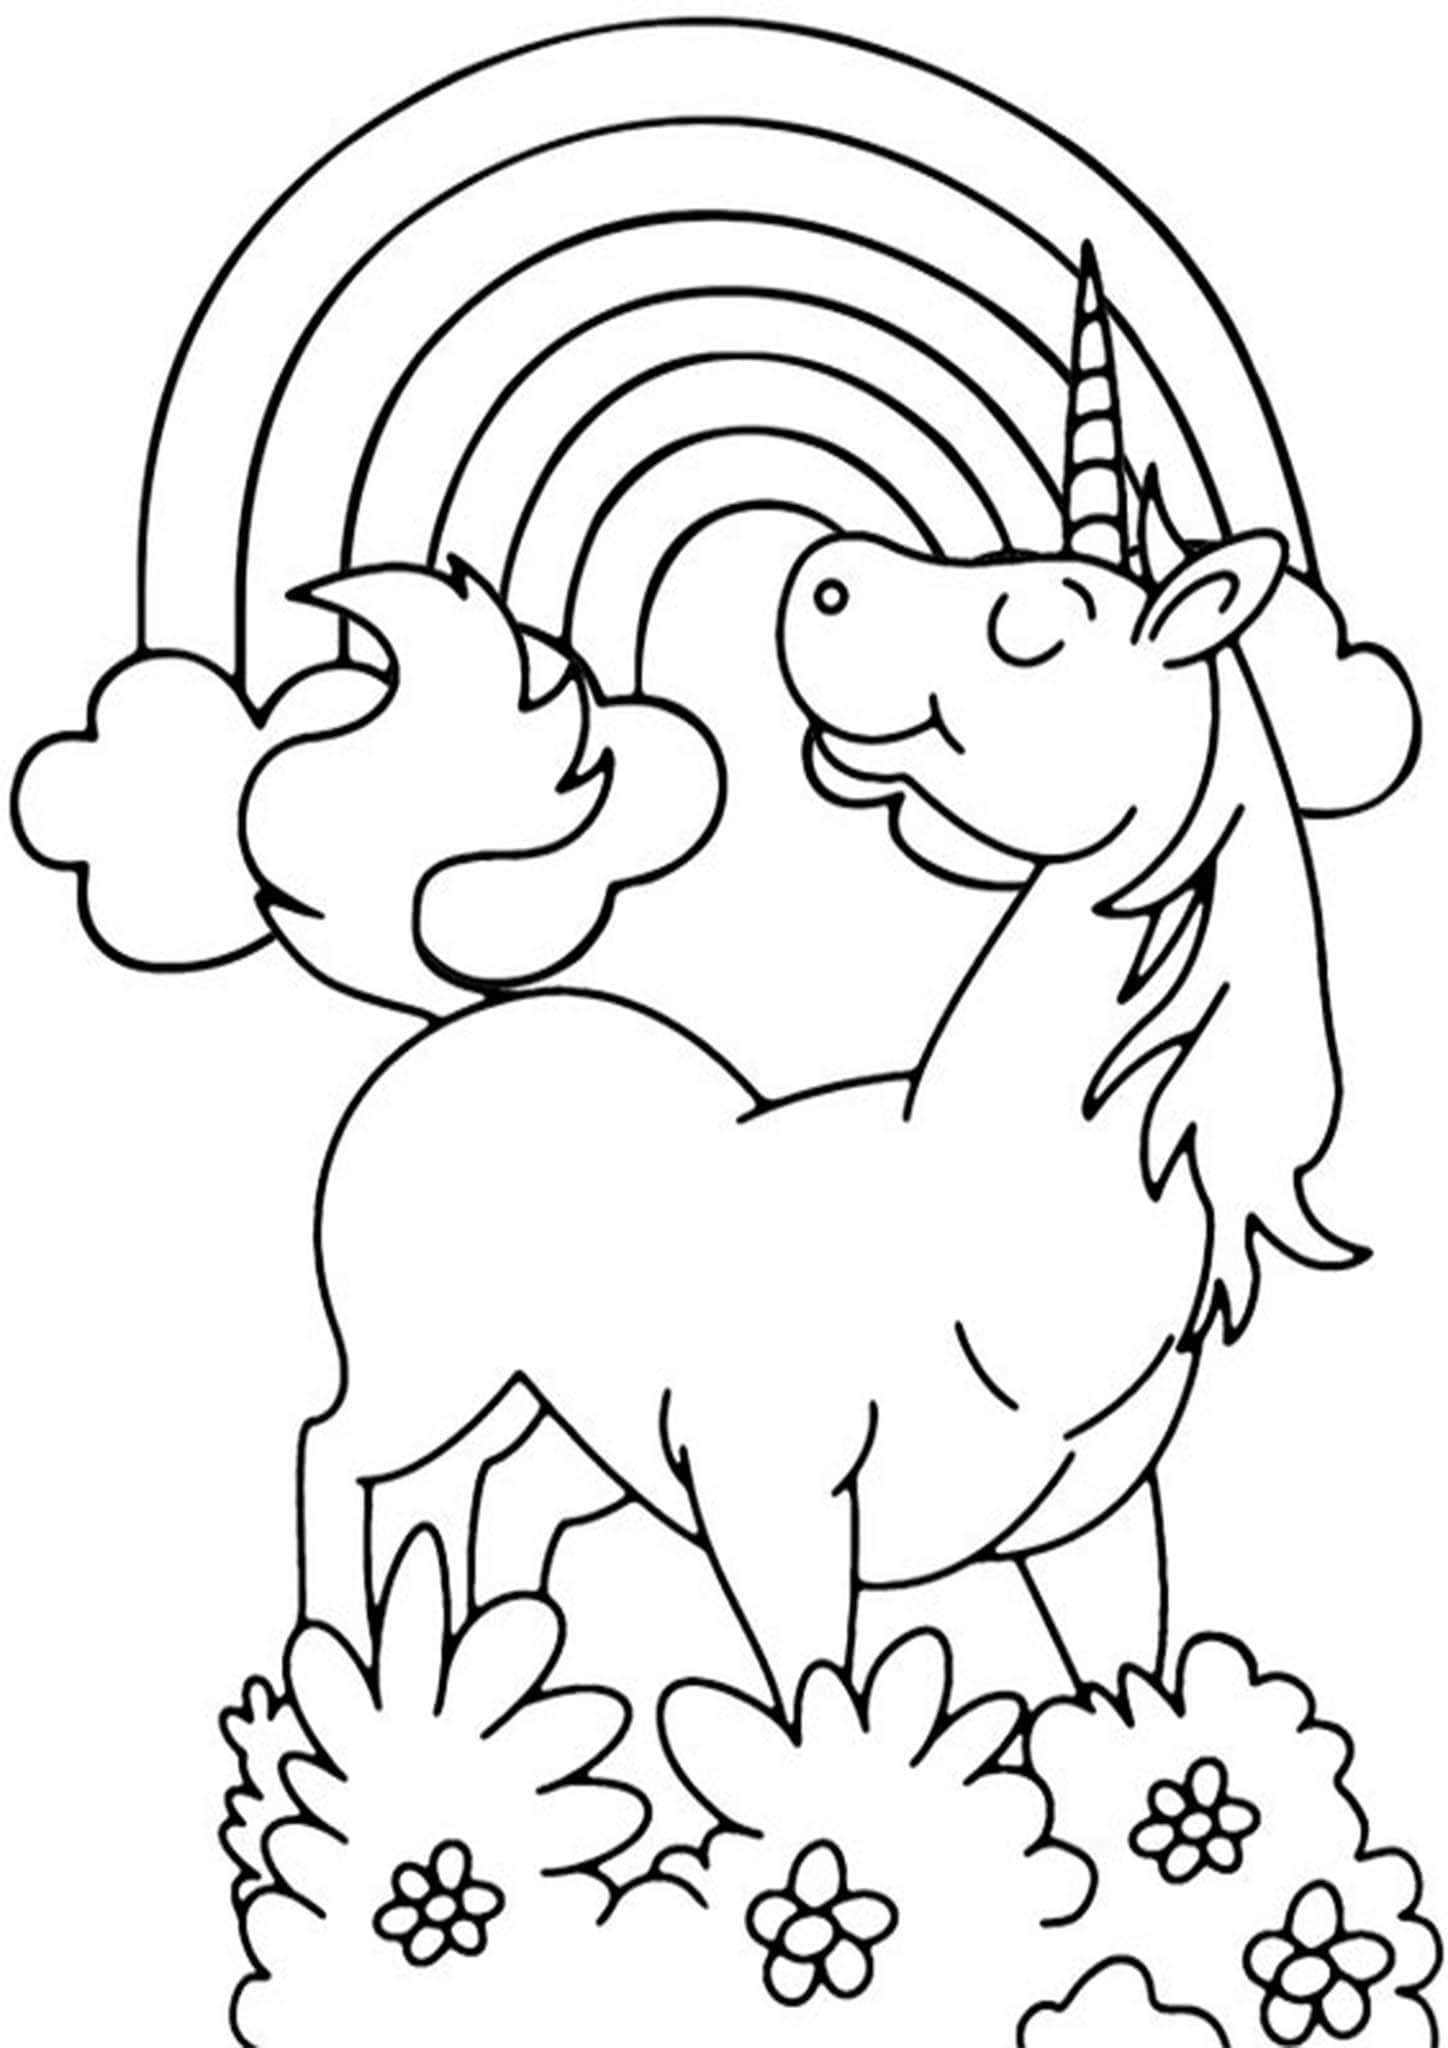 Free Easy To Print Rainbow Coloring Pages Unicorn Coloring Pages Rainbow Drawing Coloring Pages [ 2048 x 1448 Pixel ]